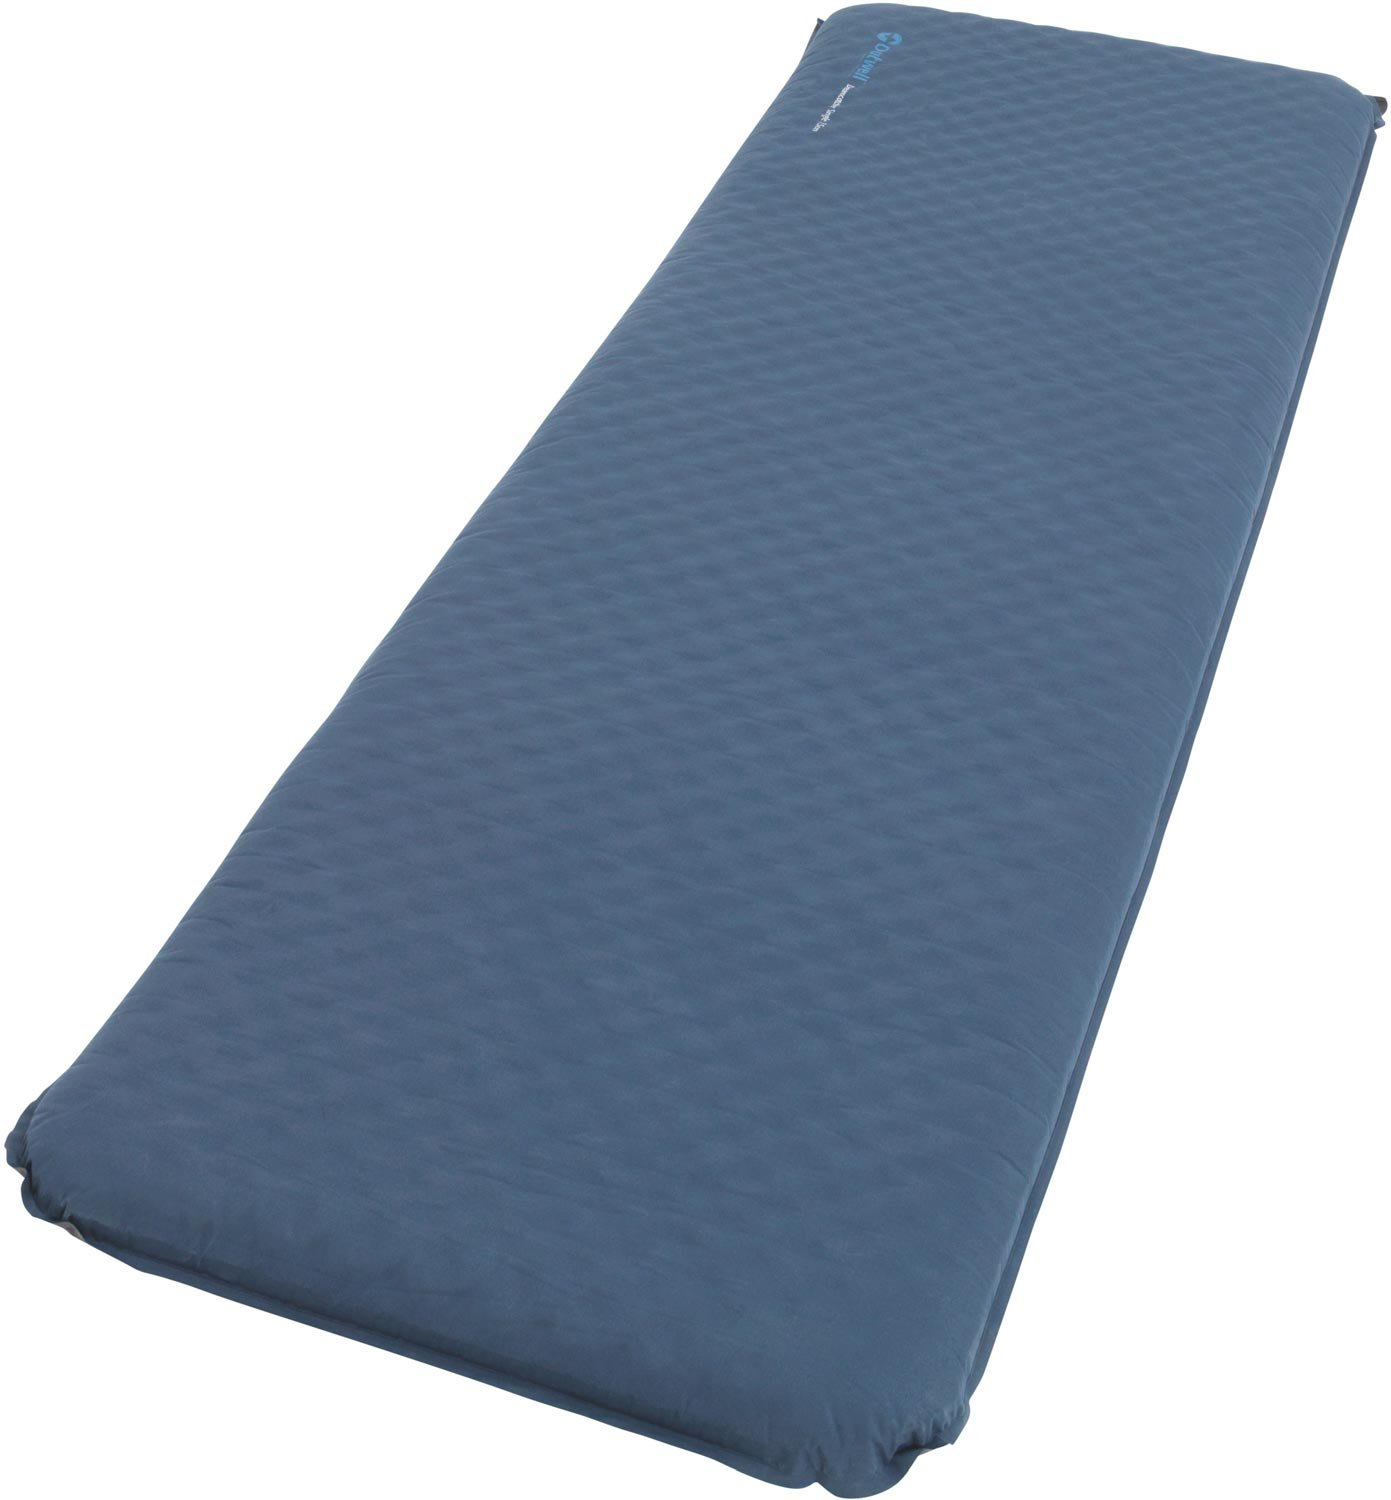 One Size//7.5 cm Outwell   Unisex Outdoor Self Inflate Mat available in Blue